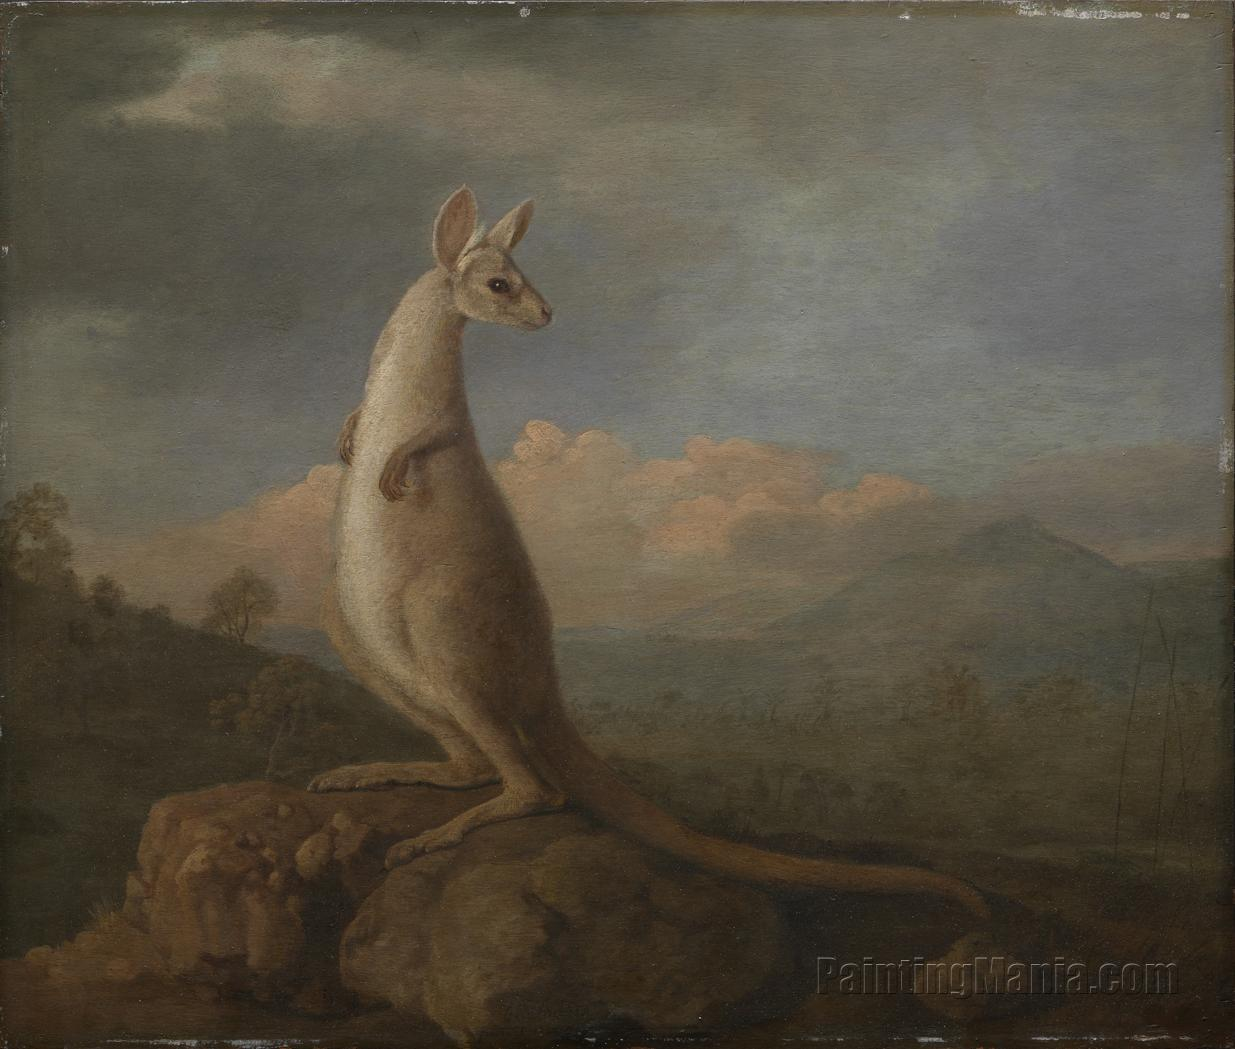 A Portrait of the Kongouro (Kangaroo) from New Holland